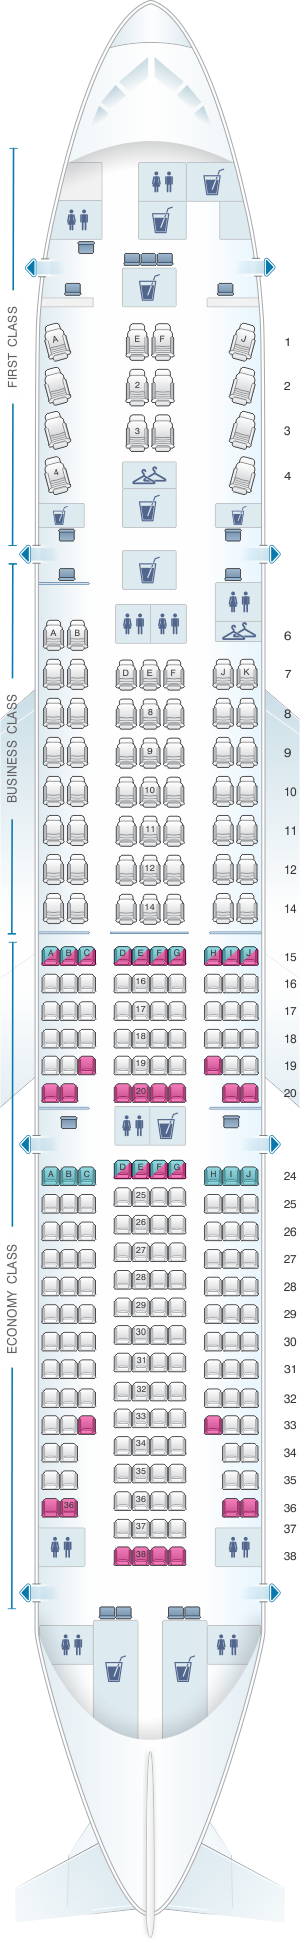 Seat map for TAAG Angola Airlines Boeing B777 200ER